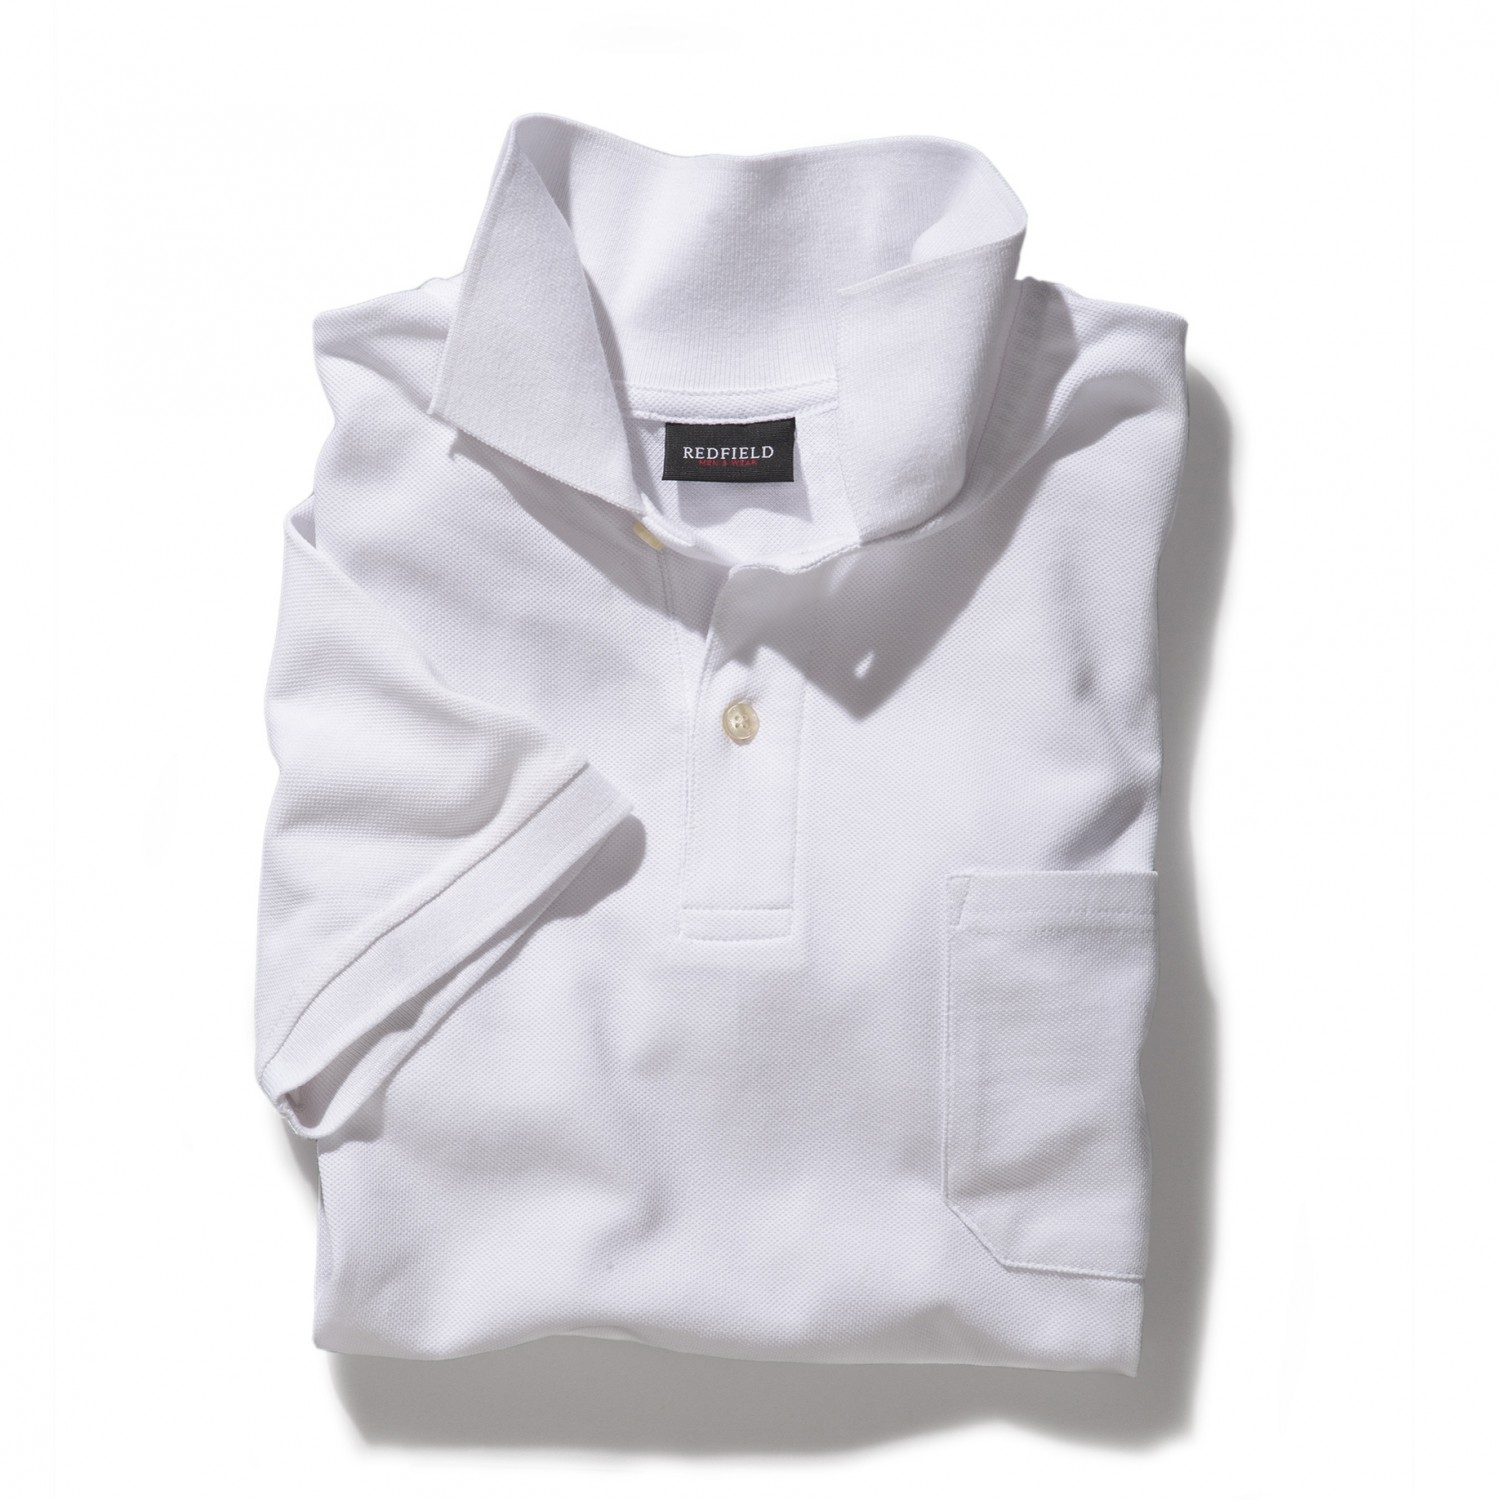 Detail Image to White polo shirt by Redfield in plus sizes until 8XL